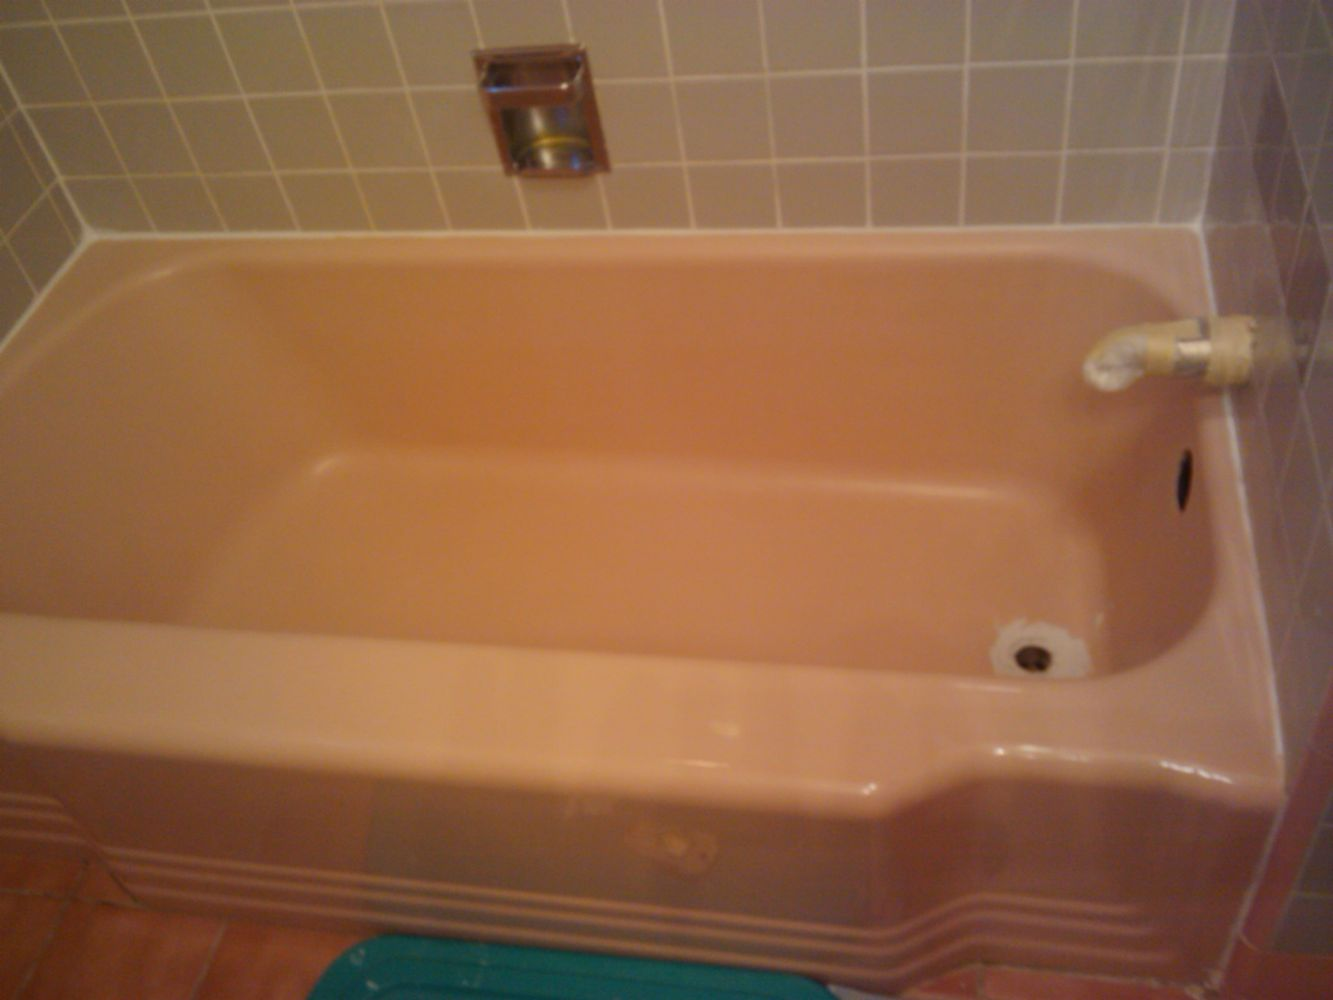 Bathtub Resurfacing in Providence, RI - In Touch Refinishing